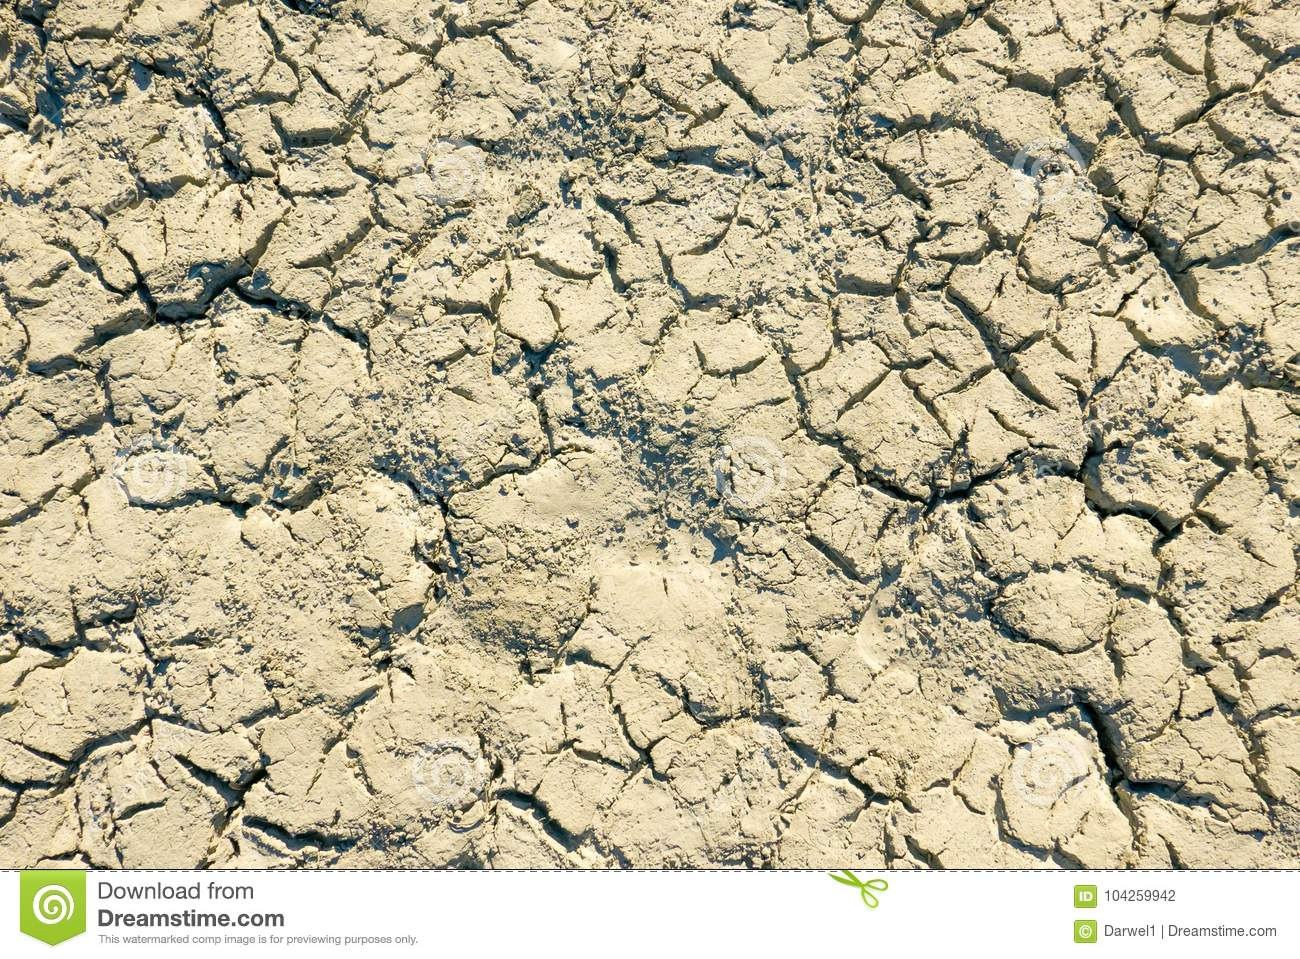 Climate change concept, dried surface of desert ground